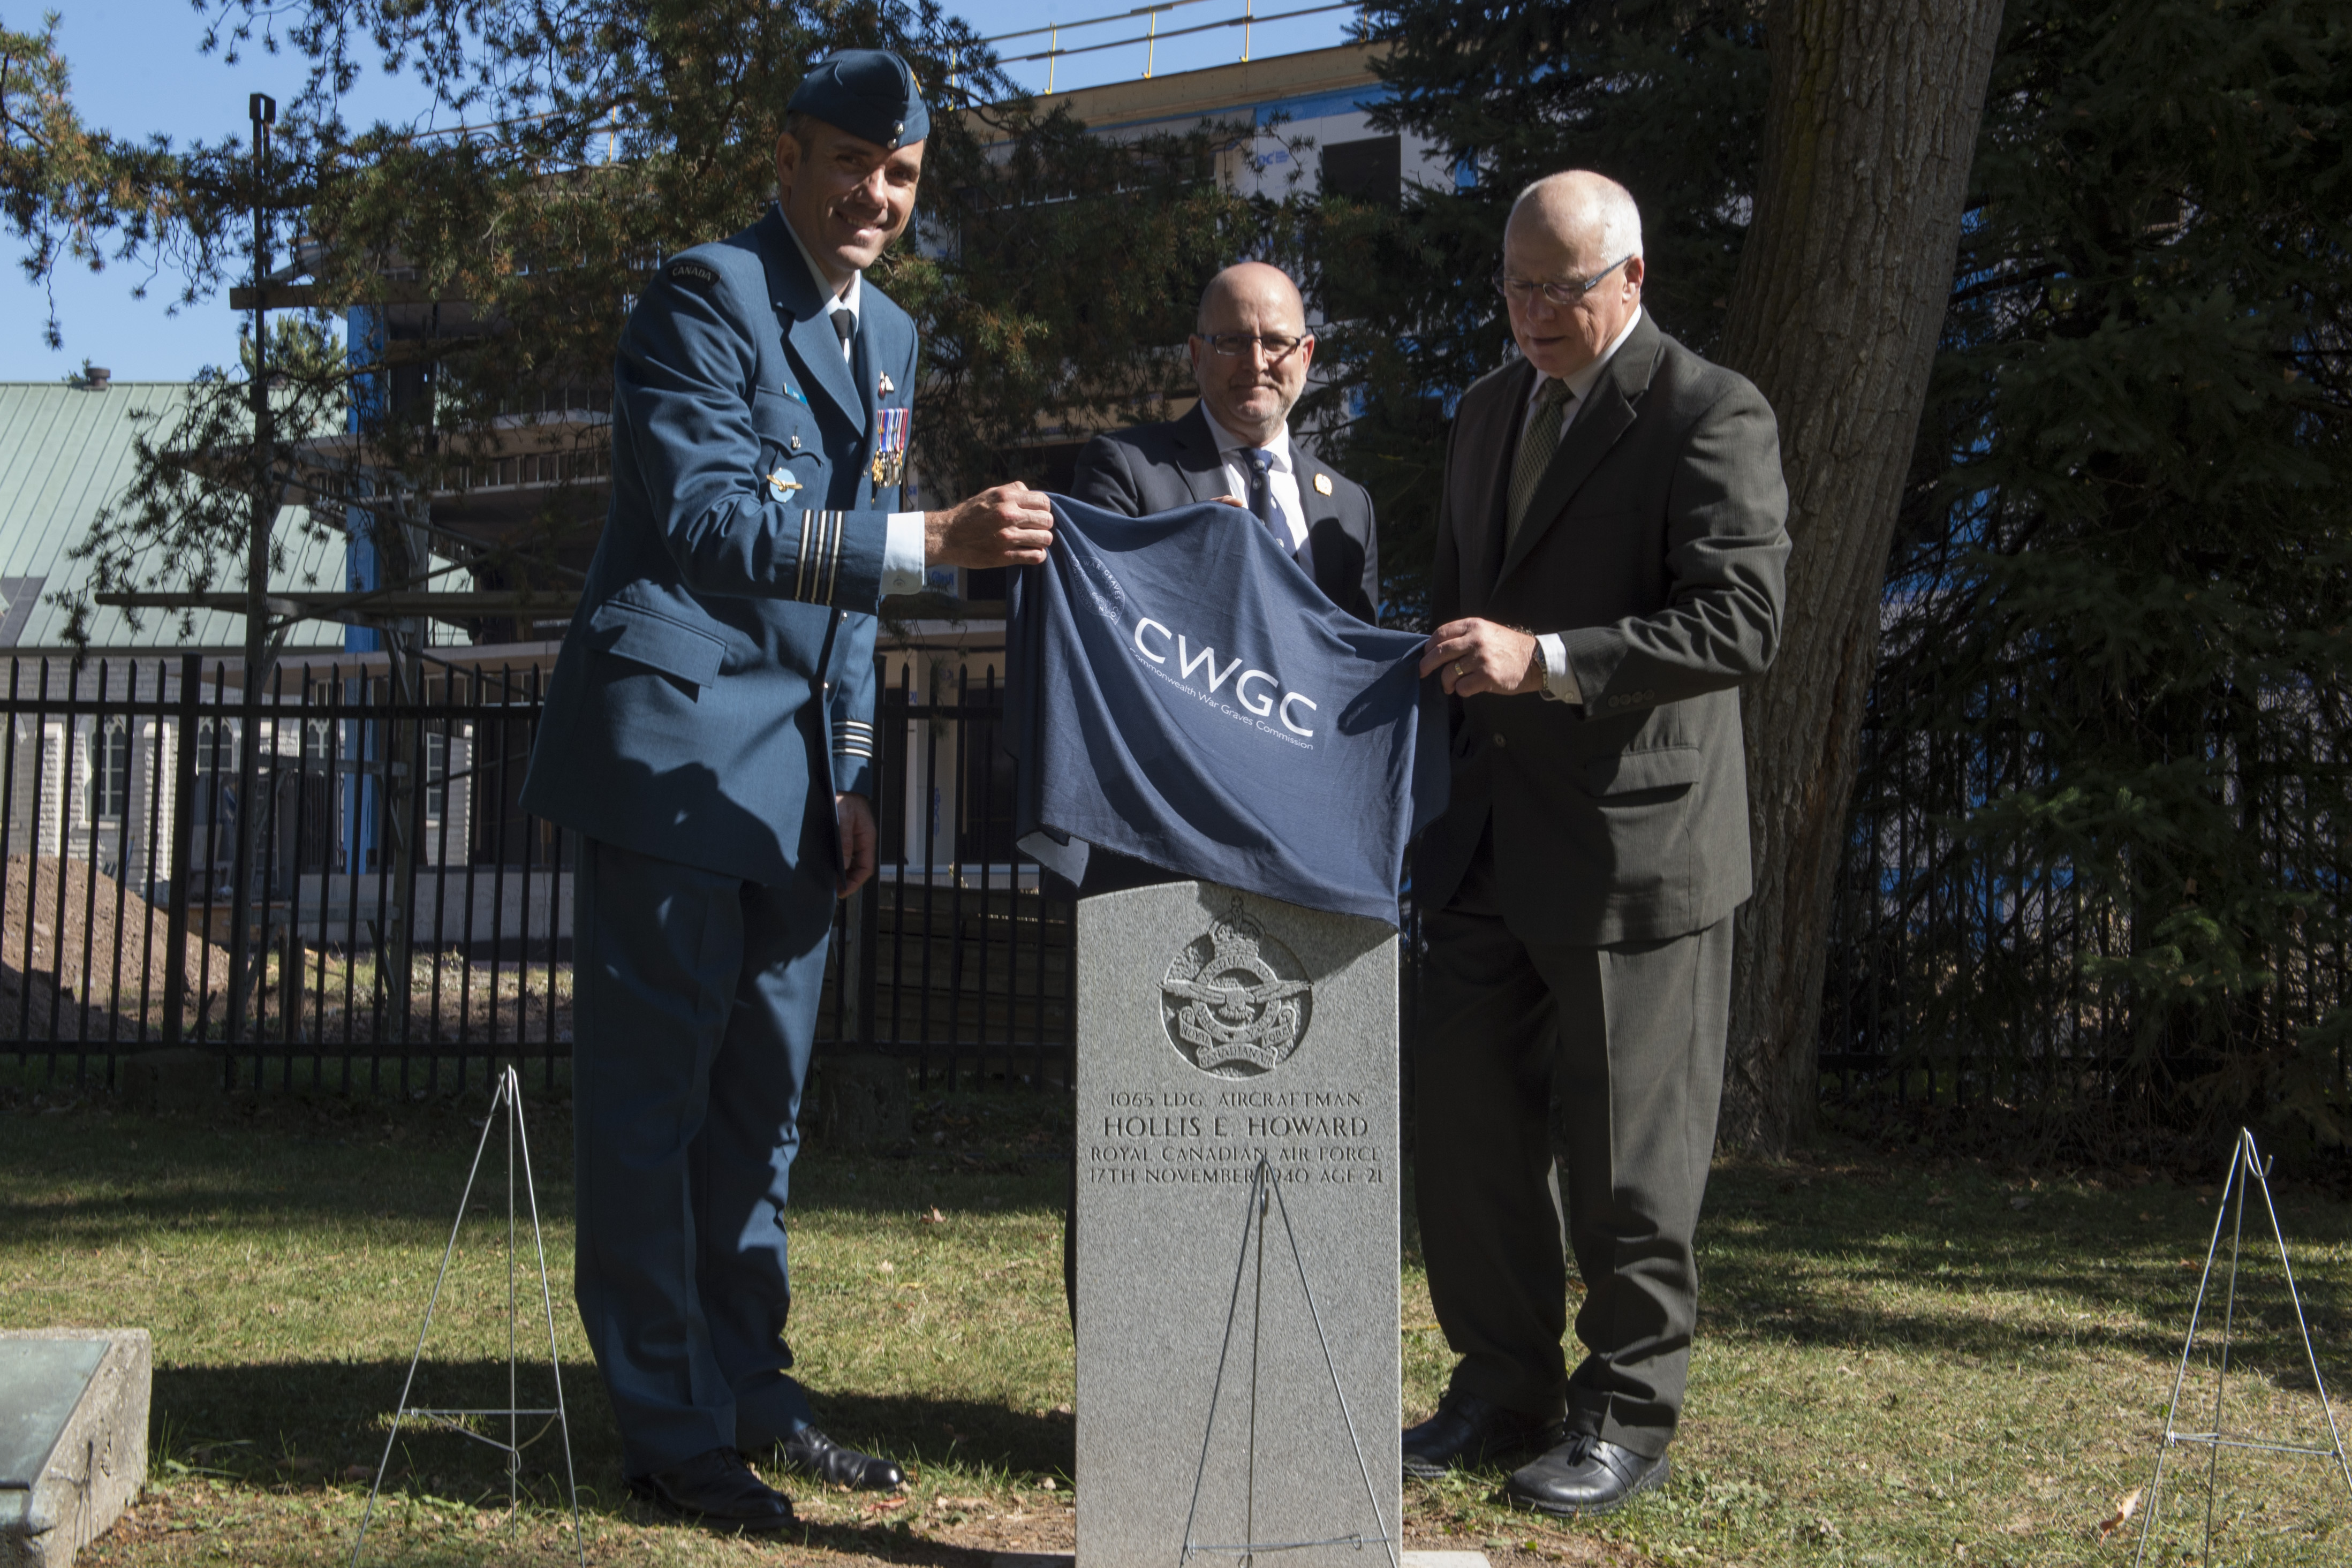 A man dressed in a blue Air Force uniform and two other men in civilian suits remove a piece of cloth covering a grave marker.